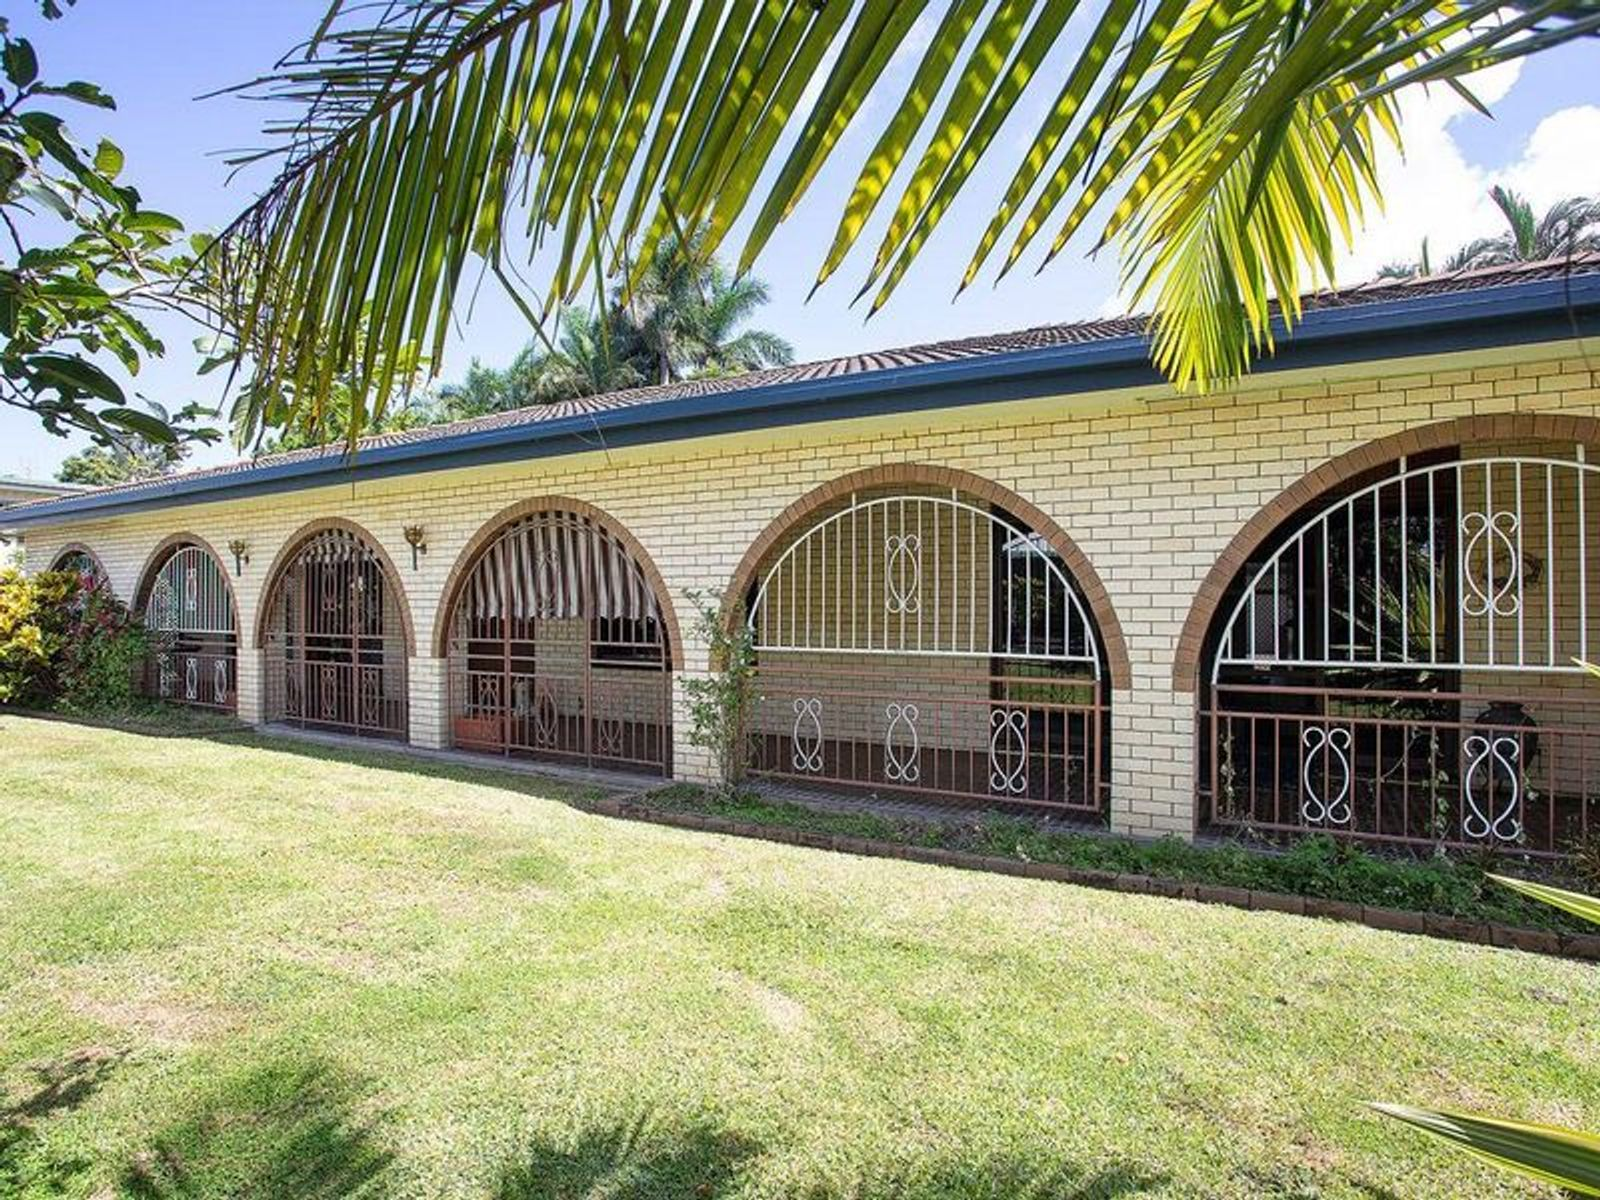 37-39 O'Keefe Street, West Mackay, QLD 4740